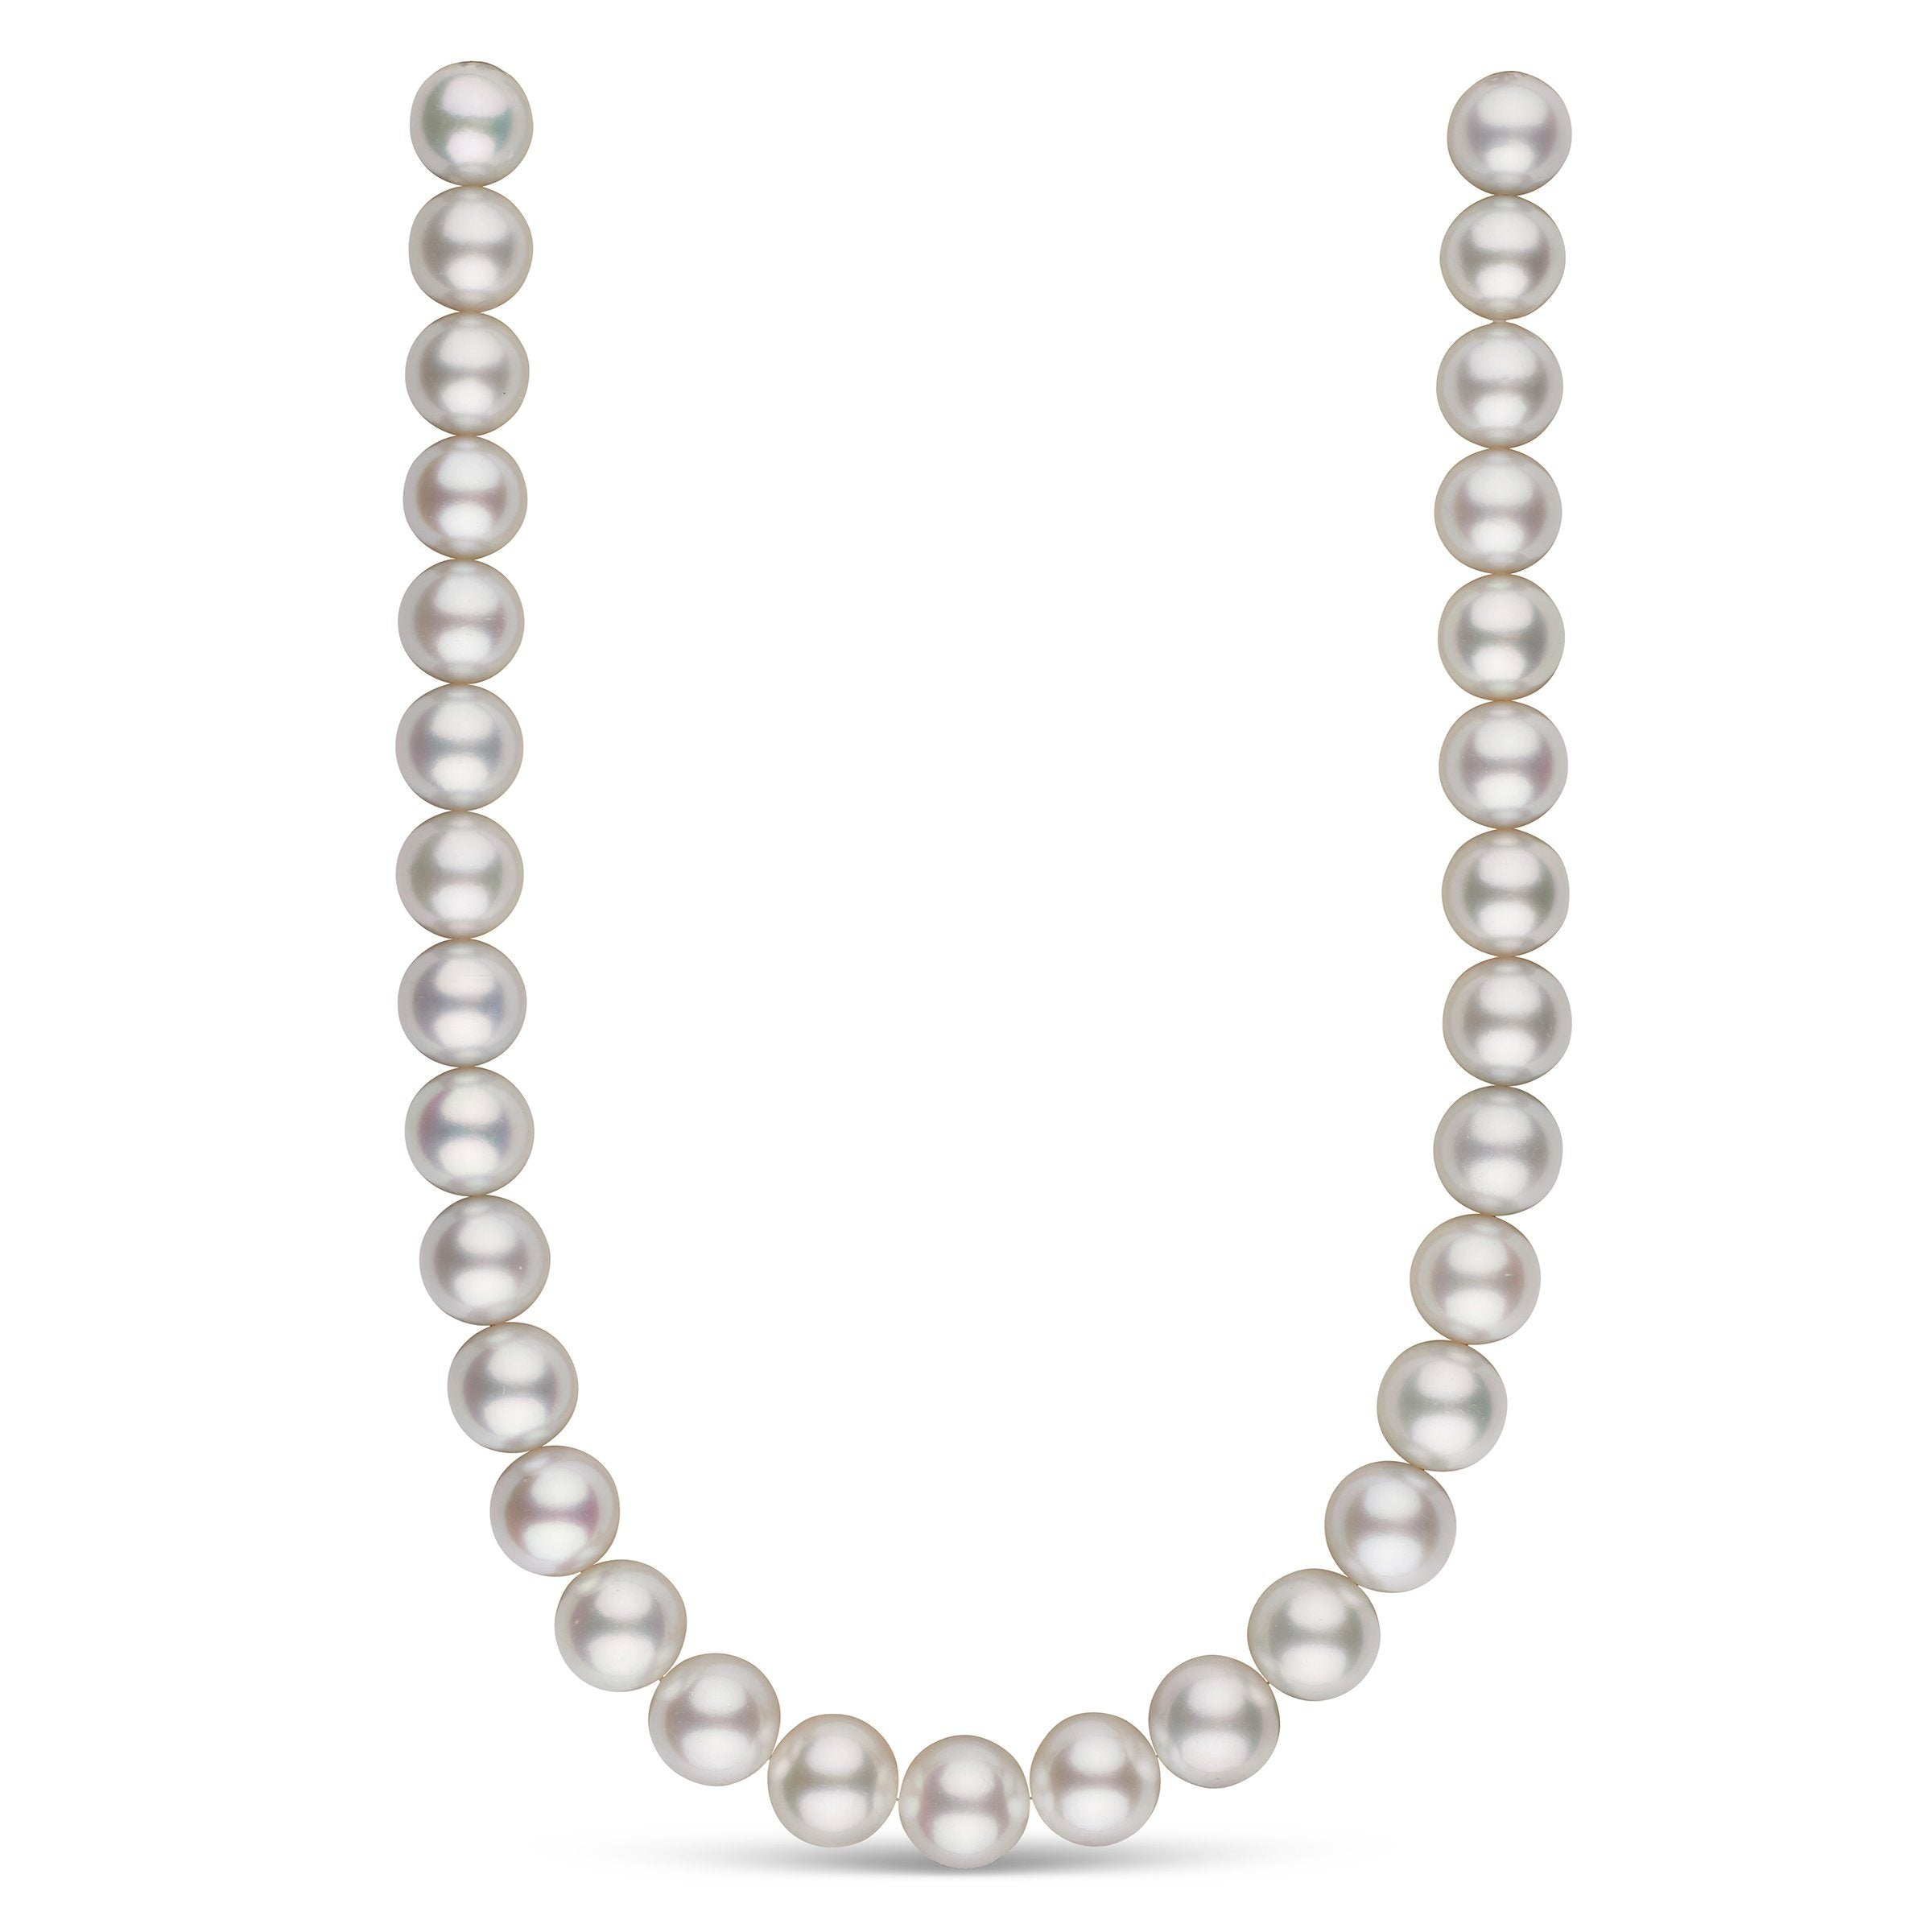 14.0-14.9 mm AA+/AAA White South Sea Round Pearl Necklace